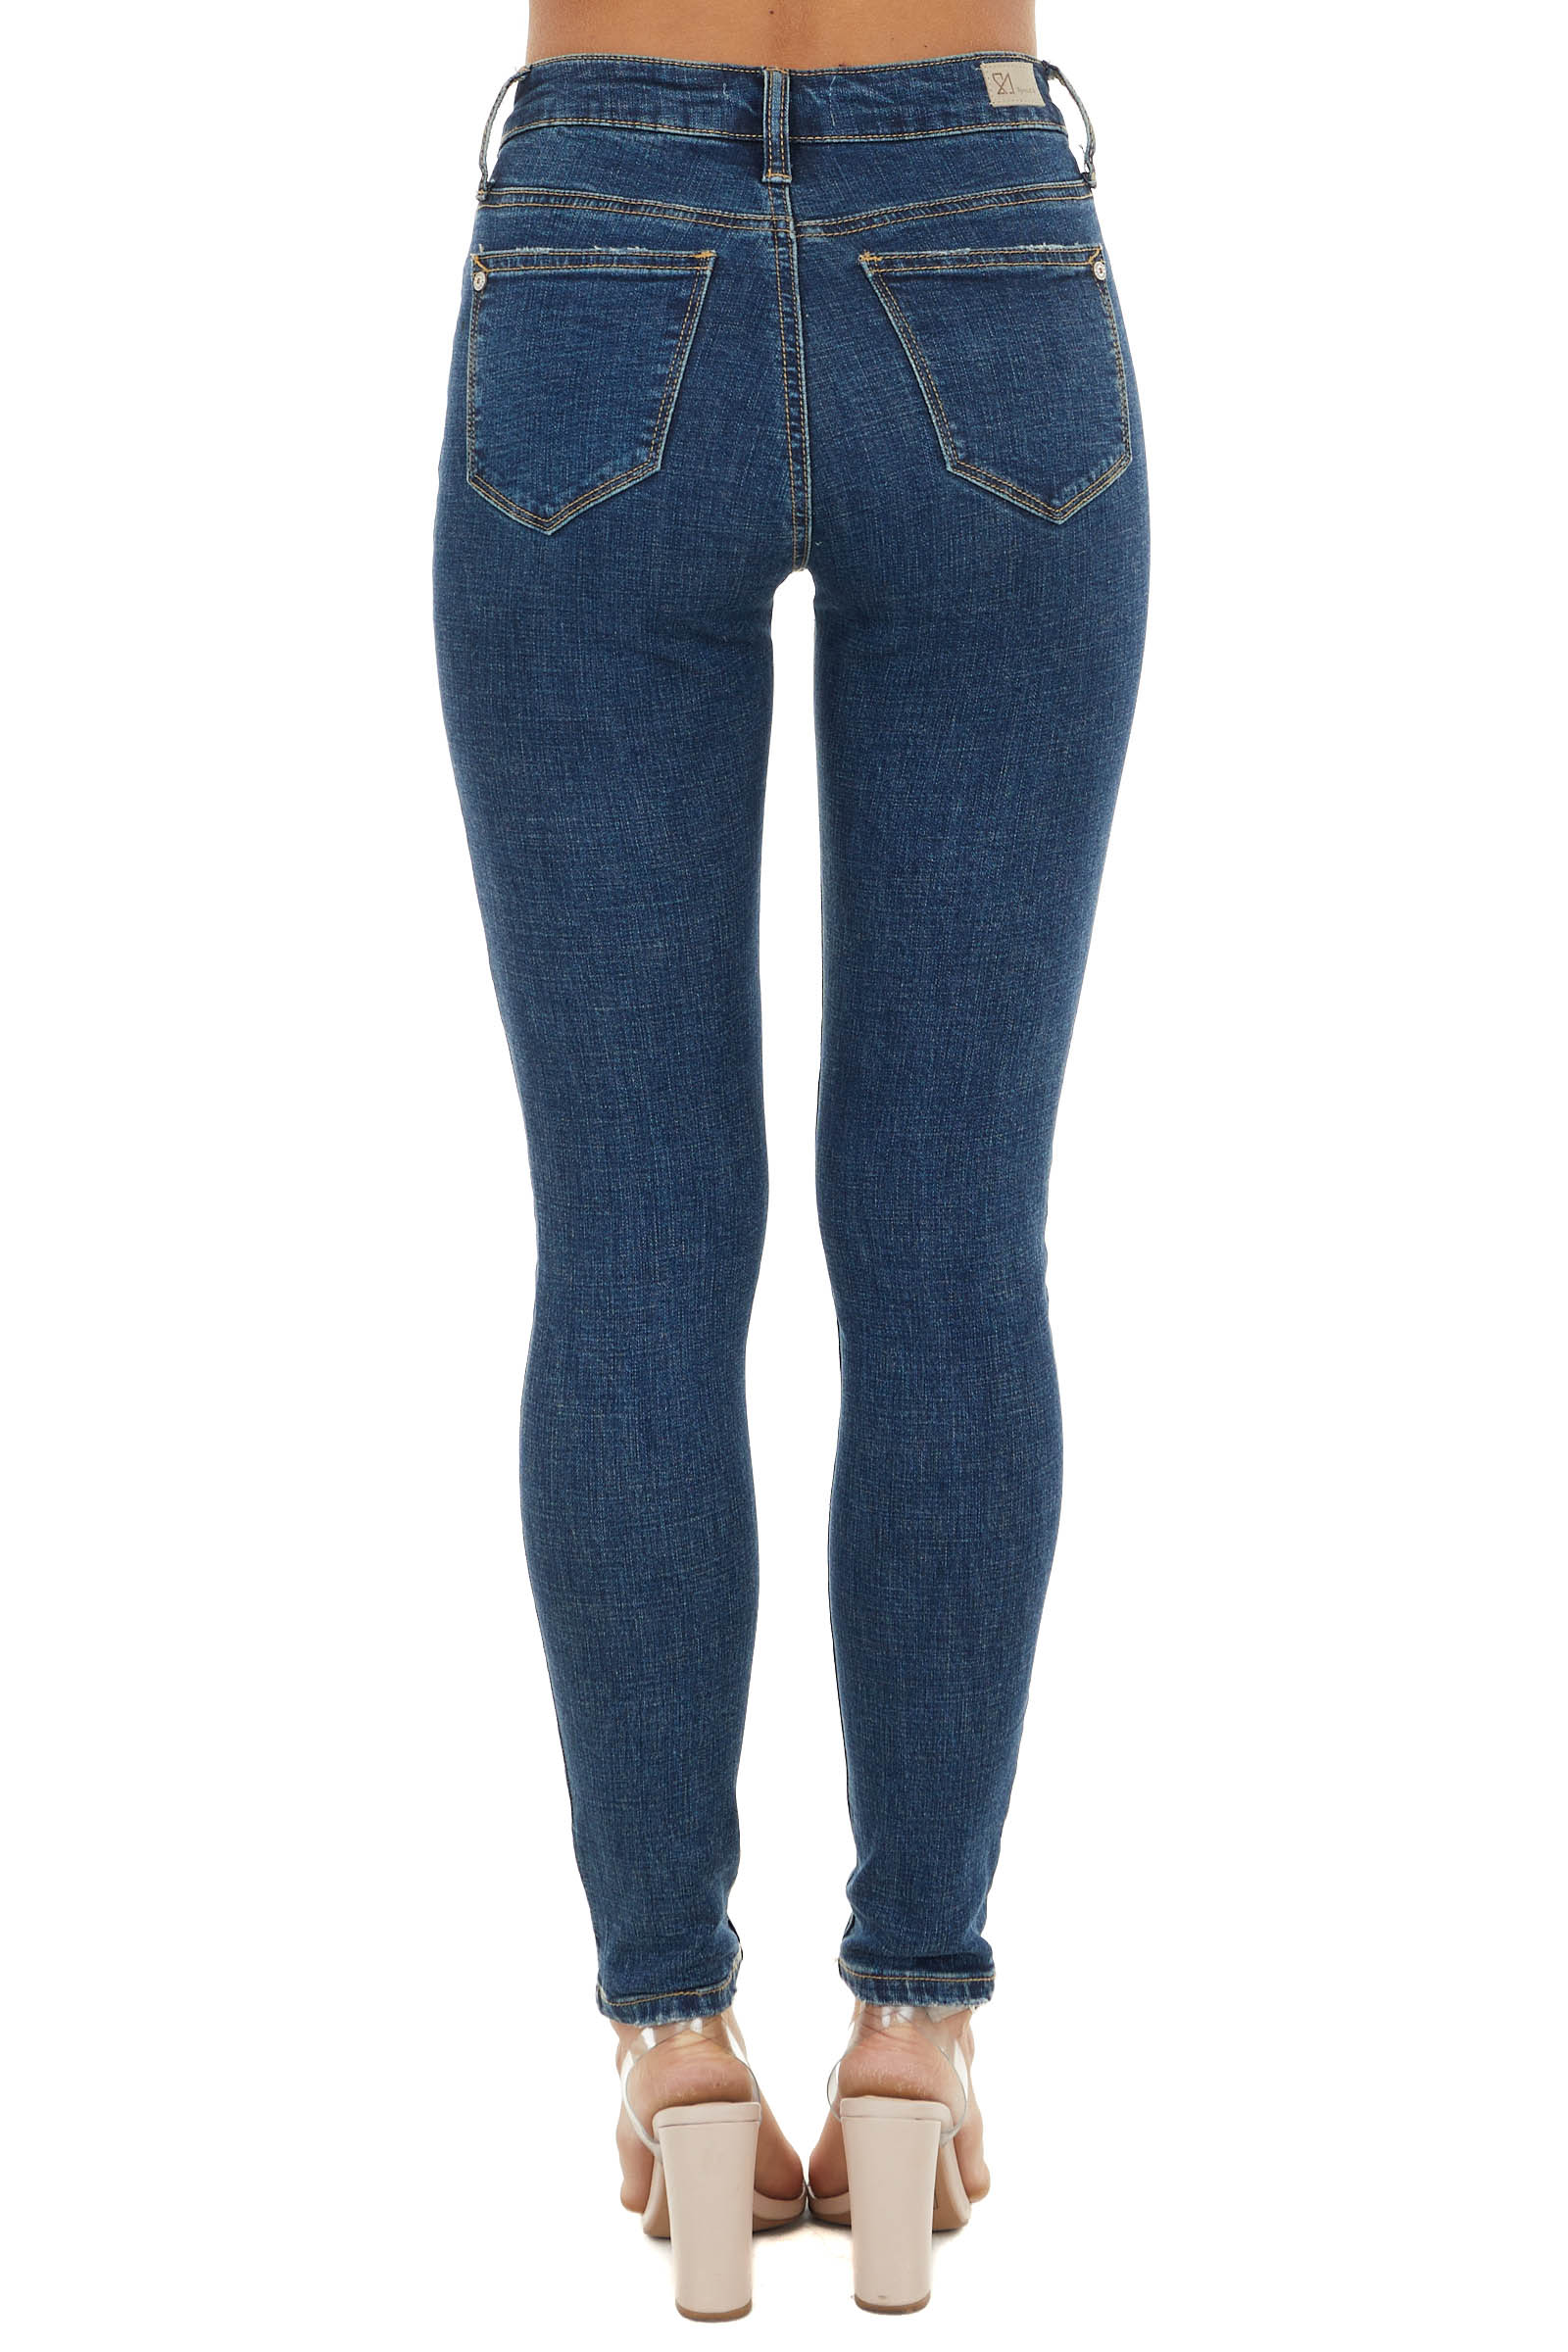 Dark Vintage Wash High Rise Distressed Skinny Jeans